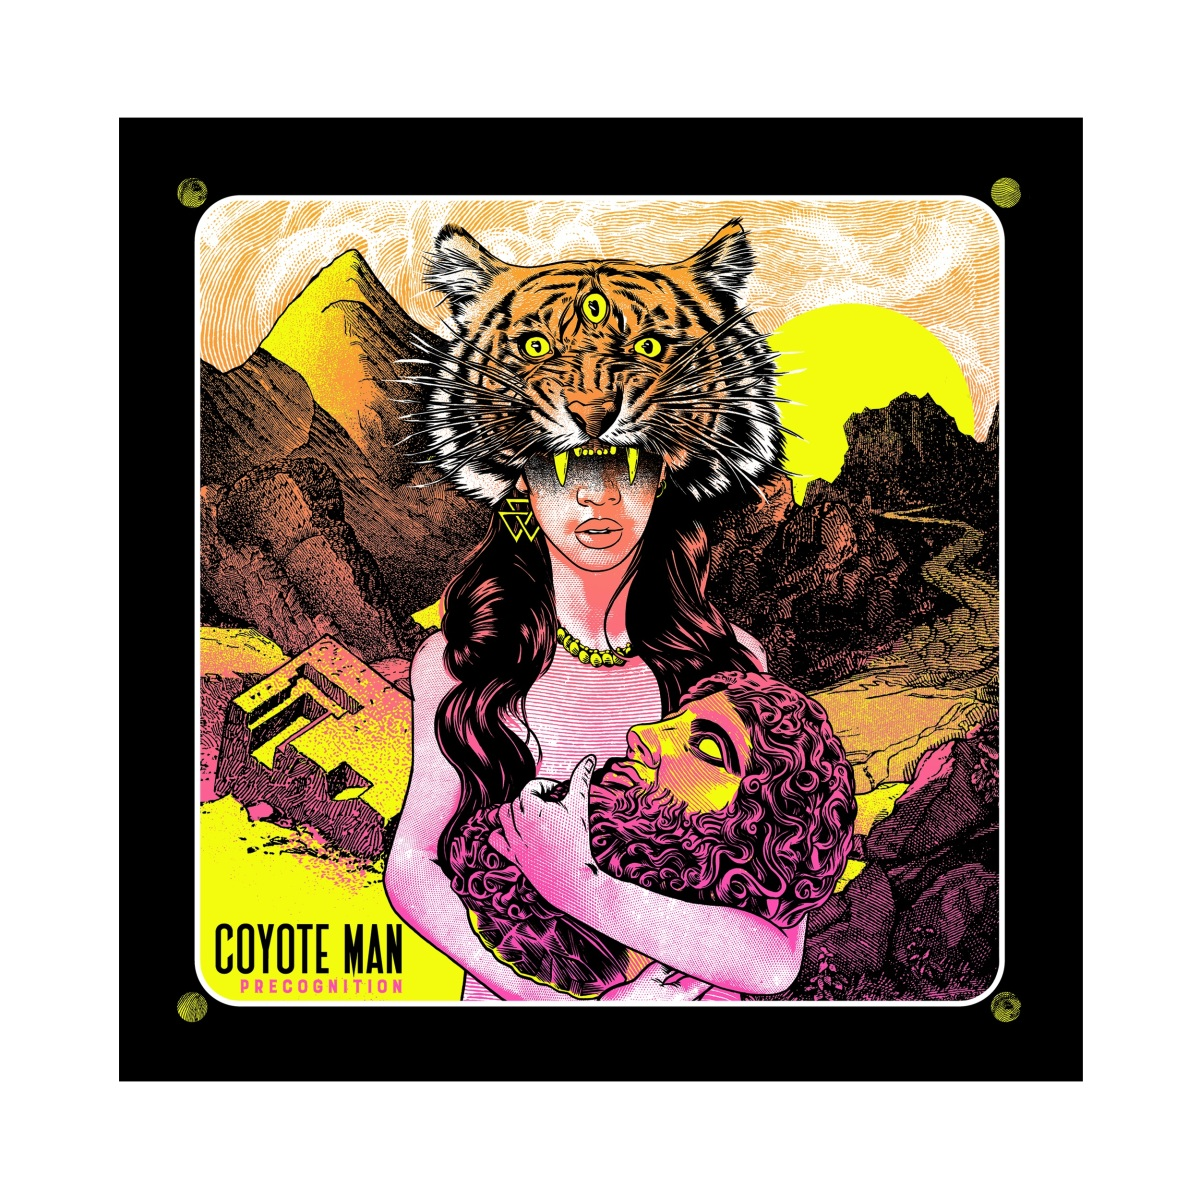 Album Review: COYOTE MAN 'PRECOGNITION'